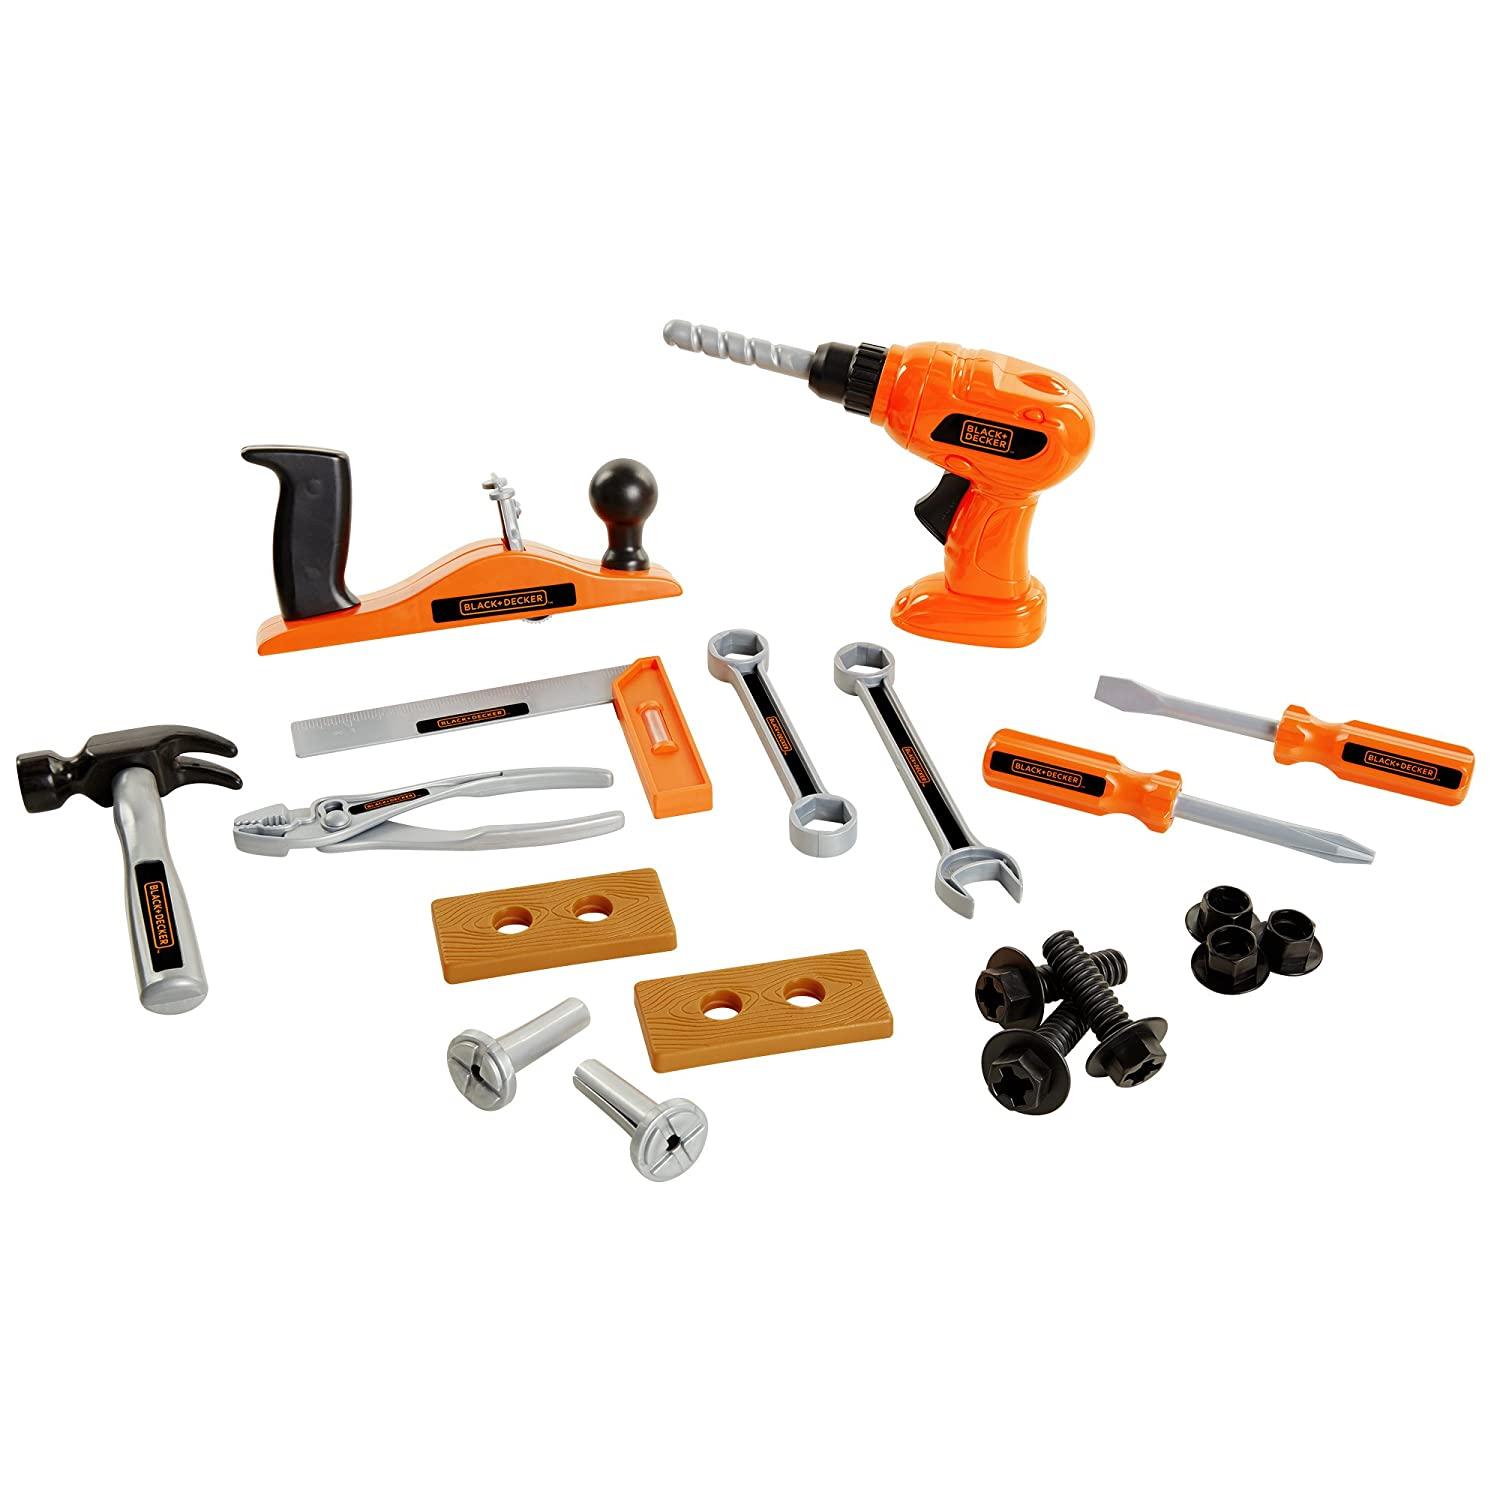 Black & Decker Jr. Fun Tool Set